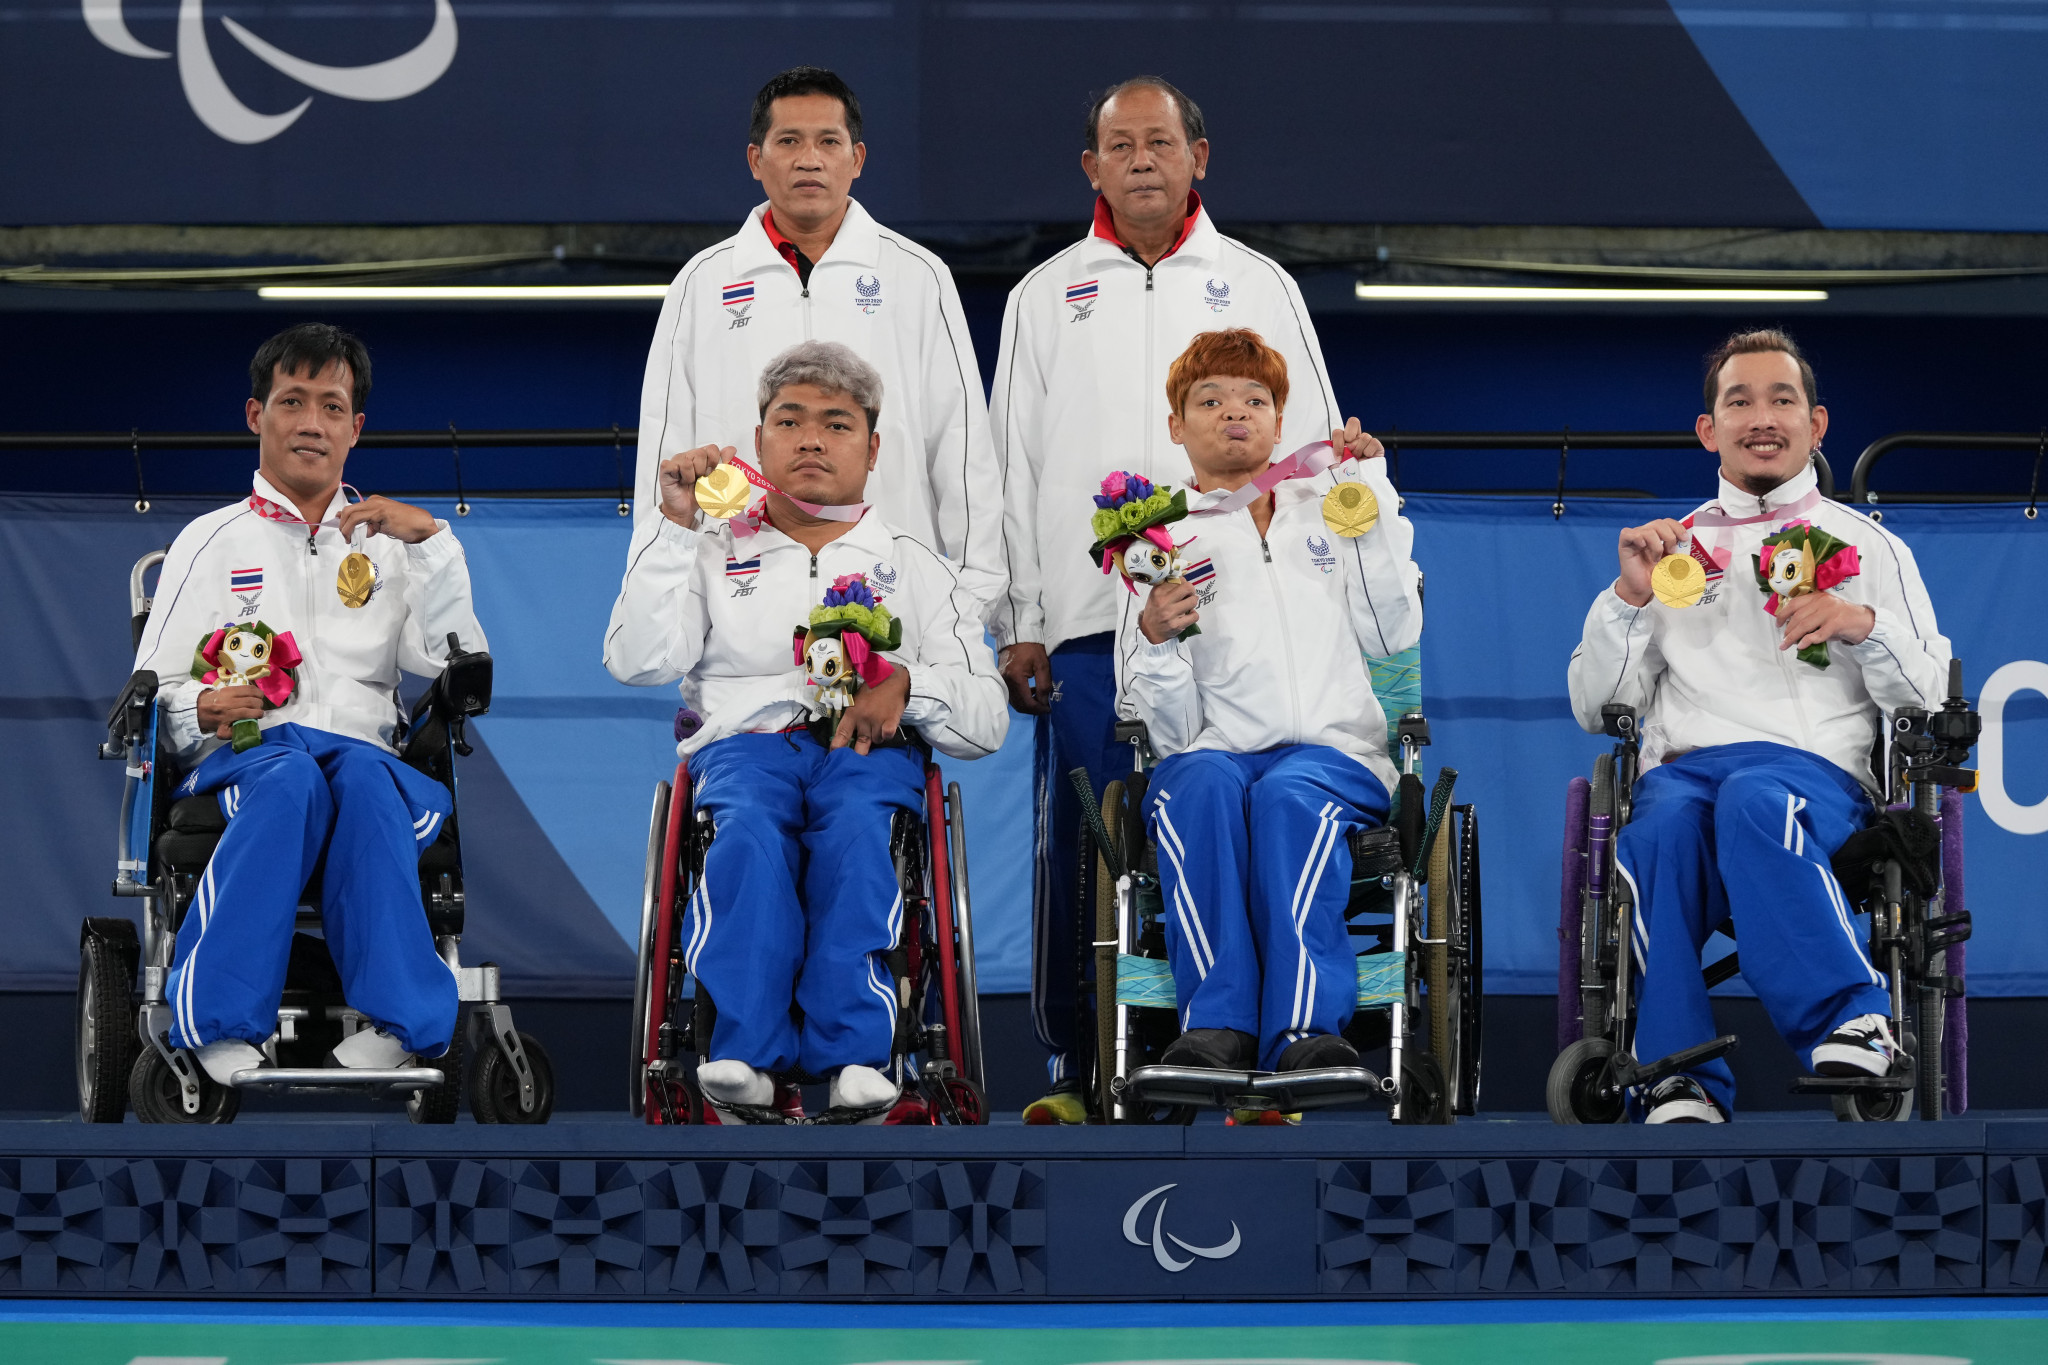 Thailand were the winners of the BC1-2 team boccia final ©Getty Images